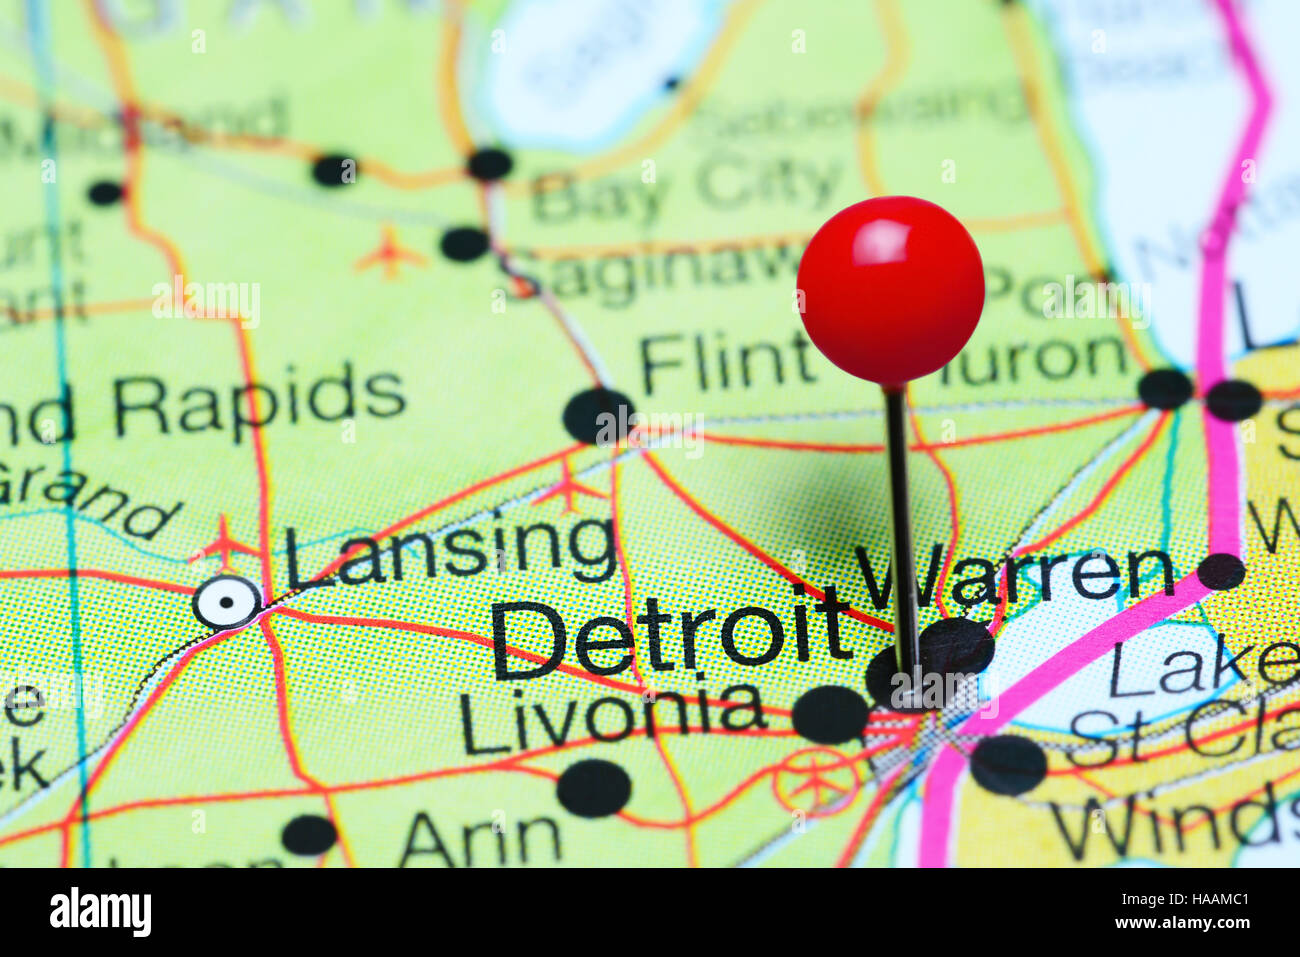 Detroit pinned on a map of Michigan, USA Stock Photo ... on detroit on world map, michigan usa, detroit suburbs map, baltimore map usa, minneapolis map usa, milwaukee map usa, detroit state map, city street maps usa, detroit city map, pittsburgh map usa, detroit area, detroit on us map,